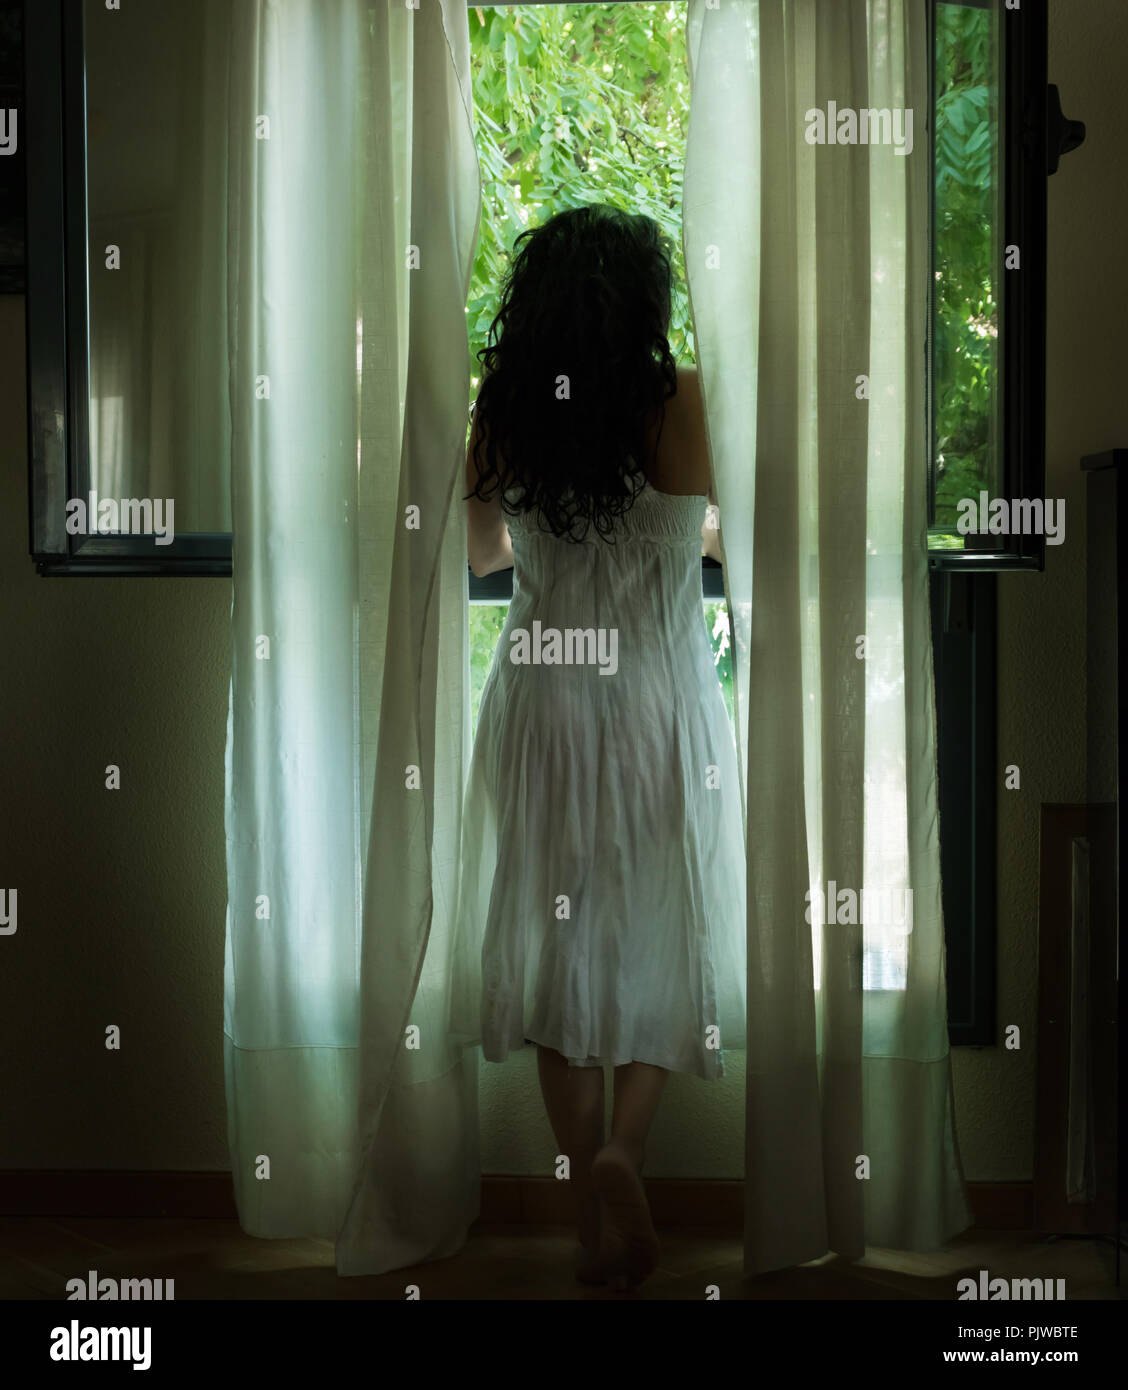 Woman in white dress looking out the window, Woman looking out the window - Stock Image